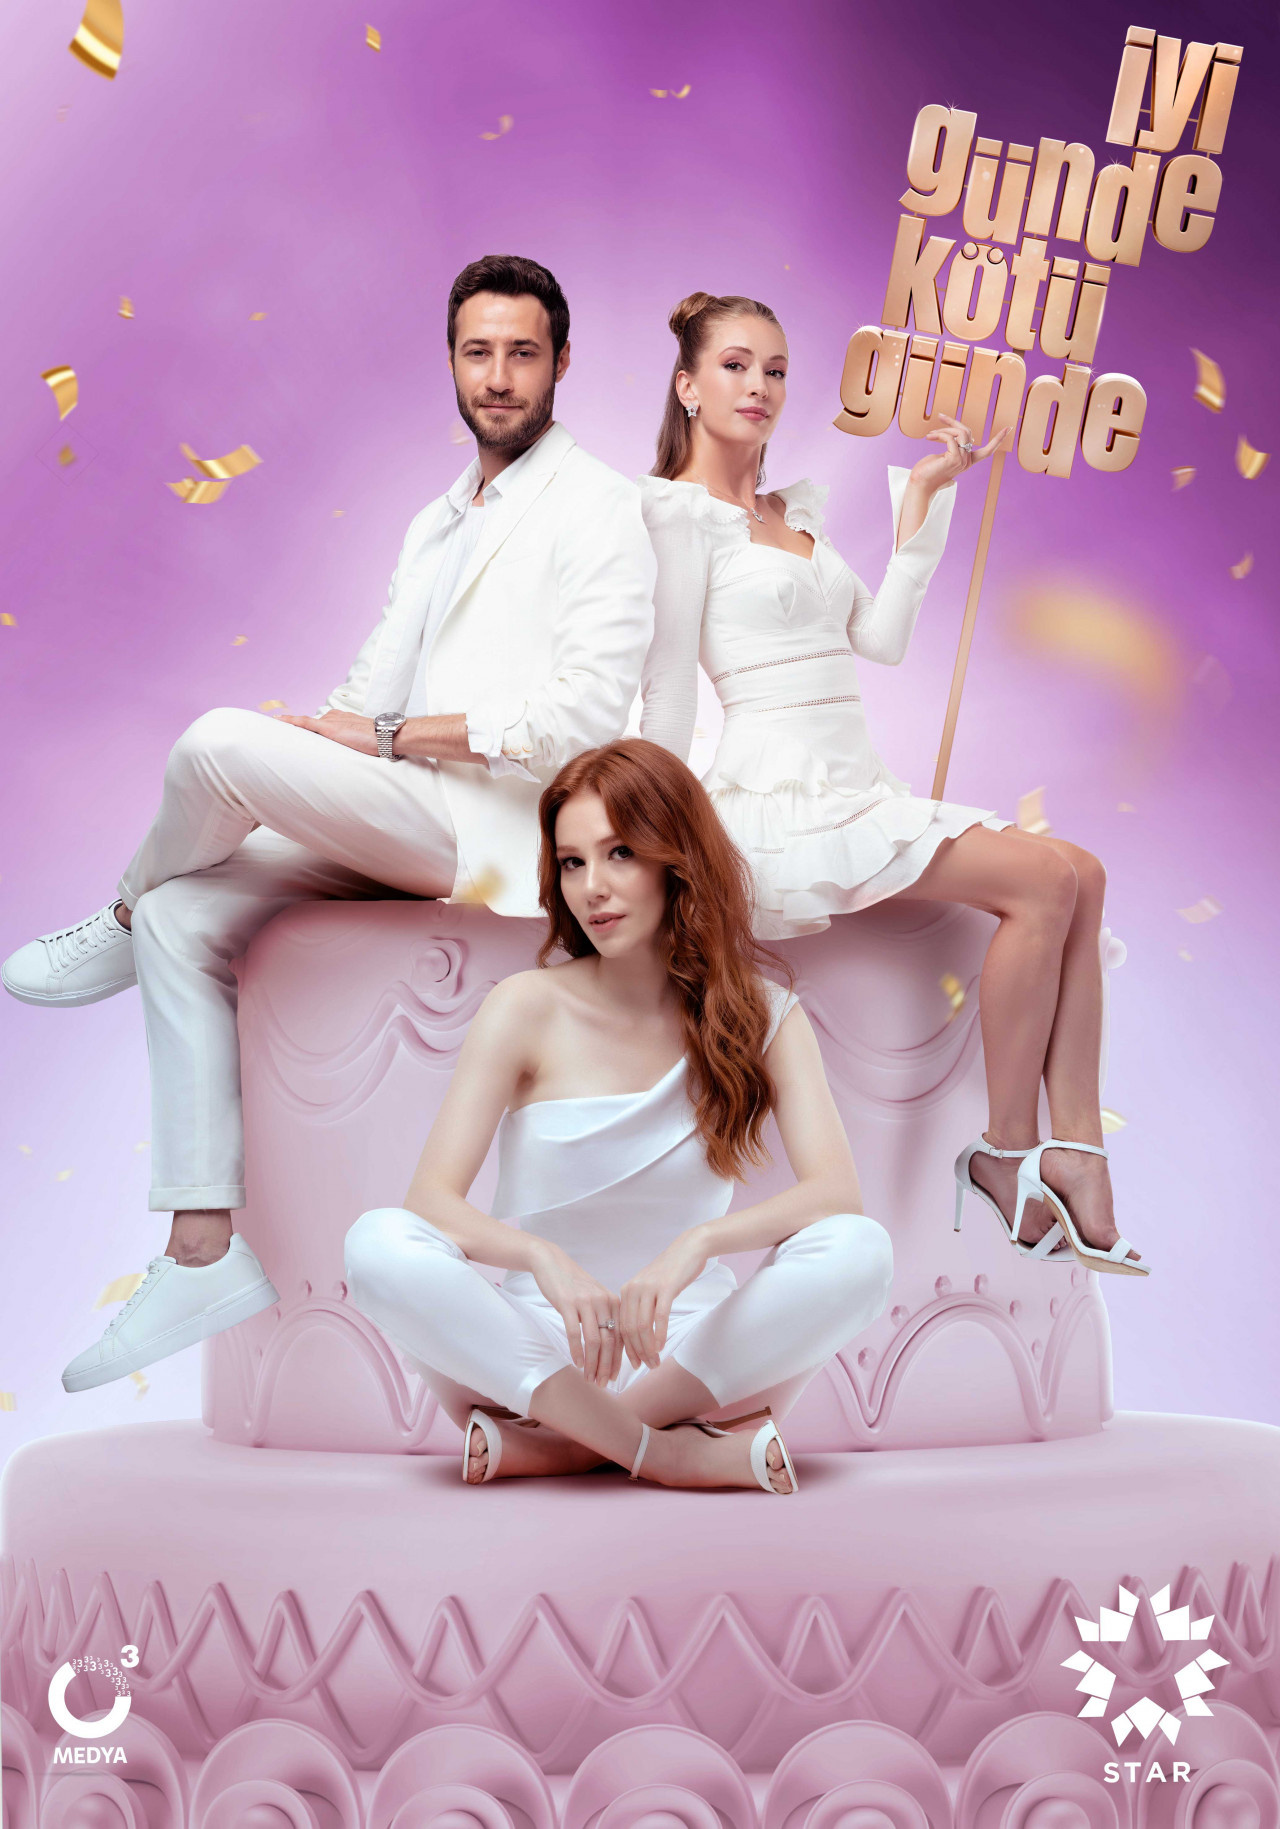 İyi Günde Kötü Günde is an assertive Turkish series of the new season.